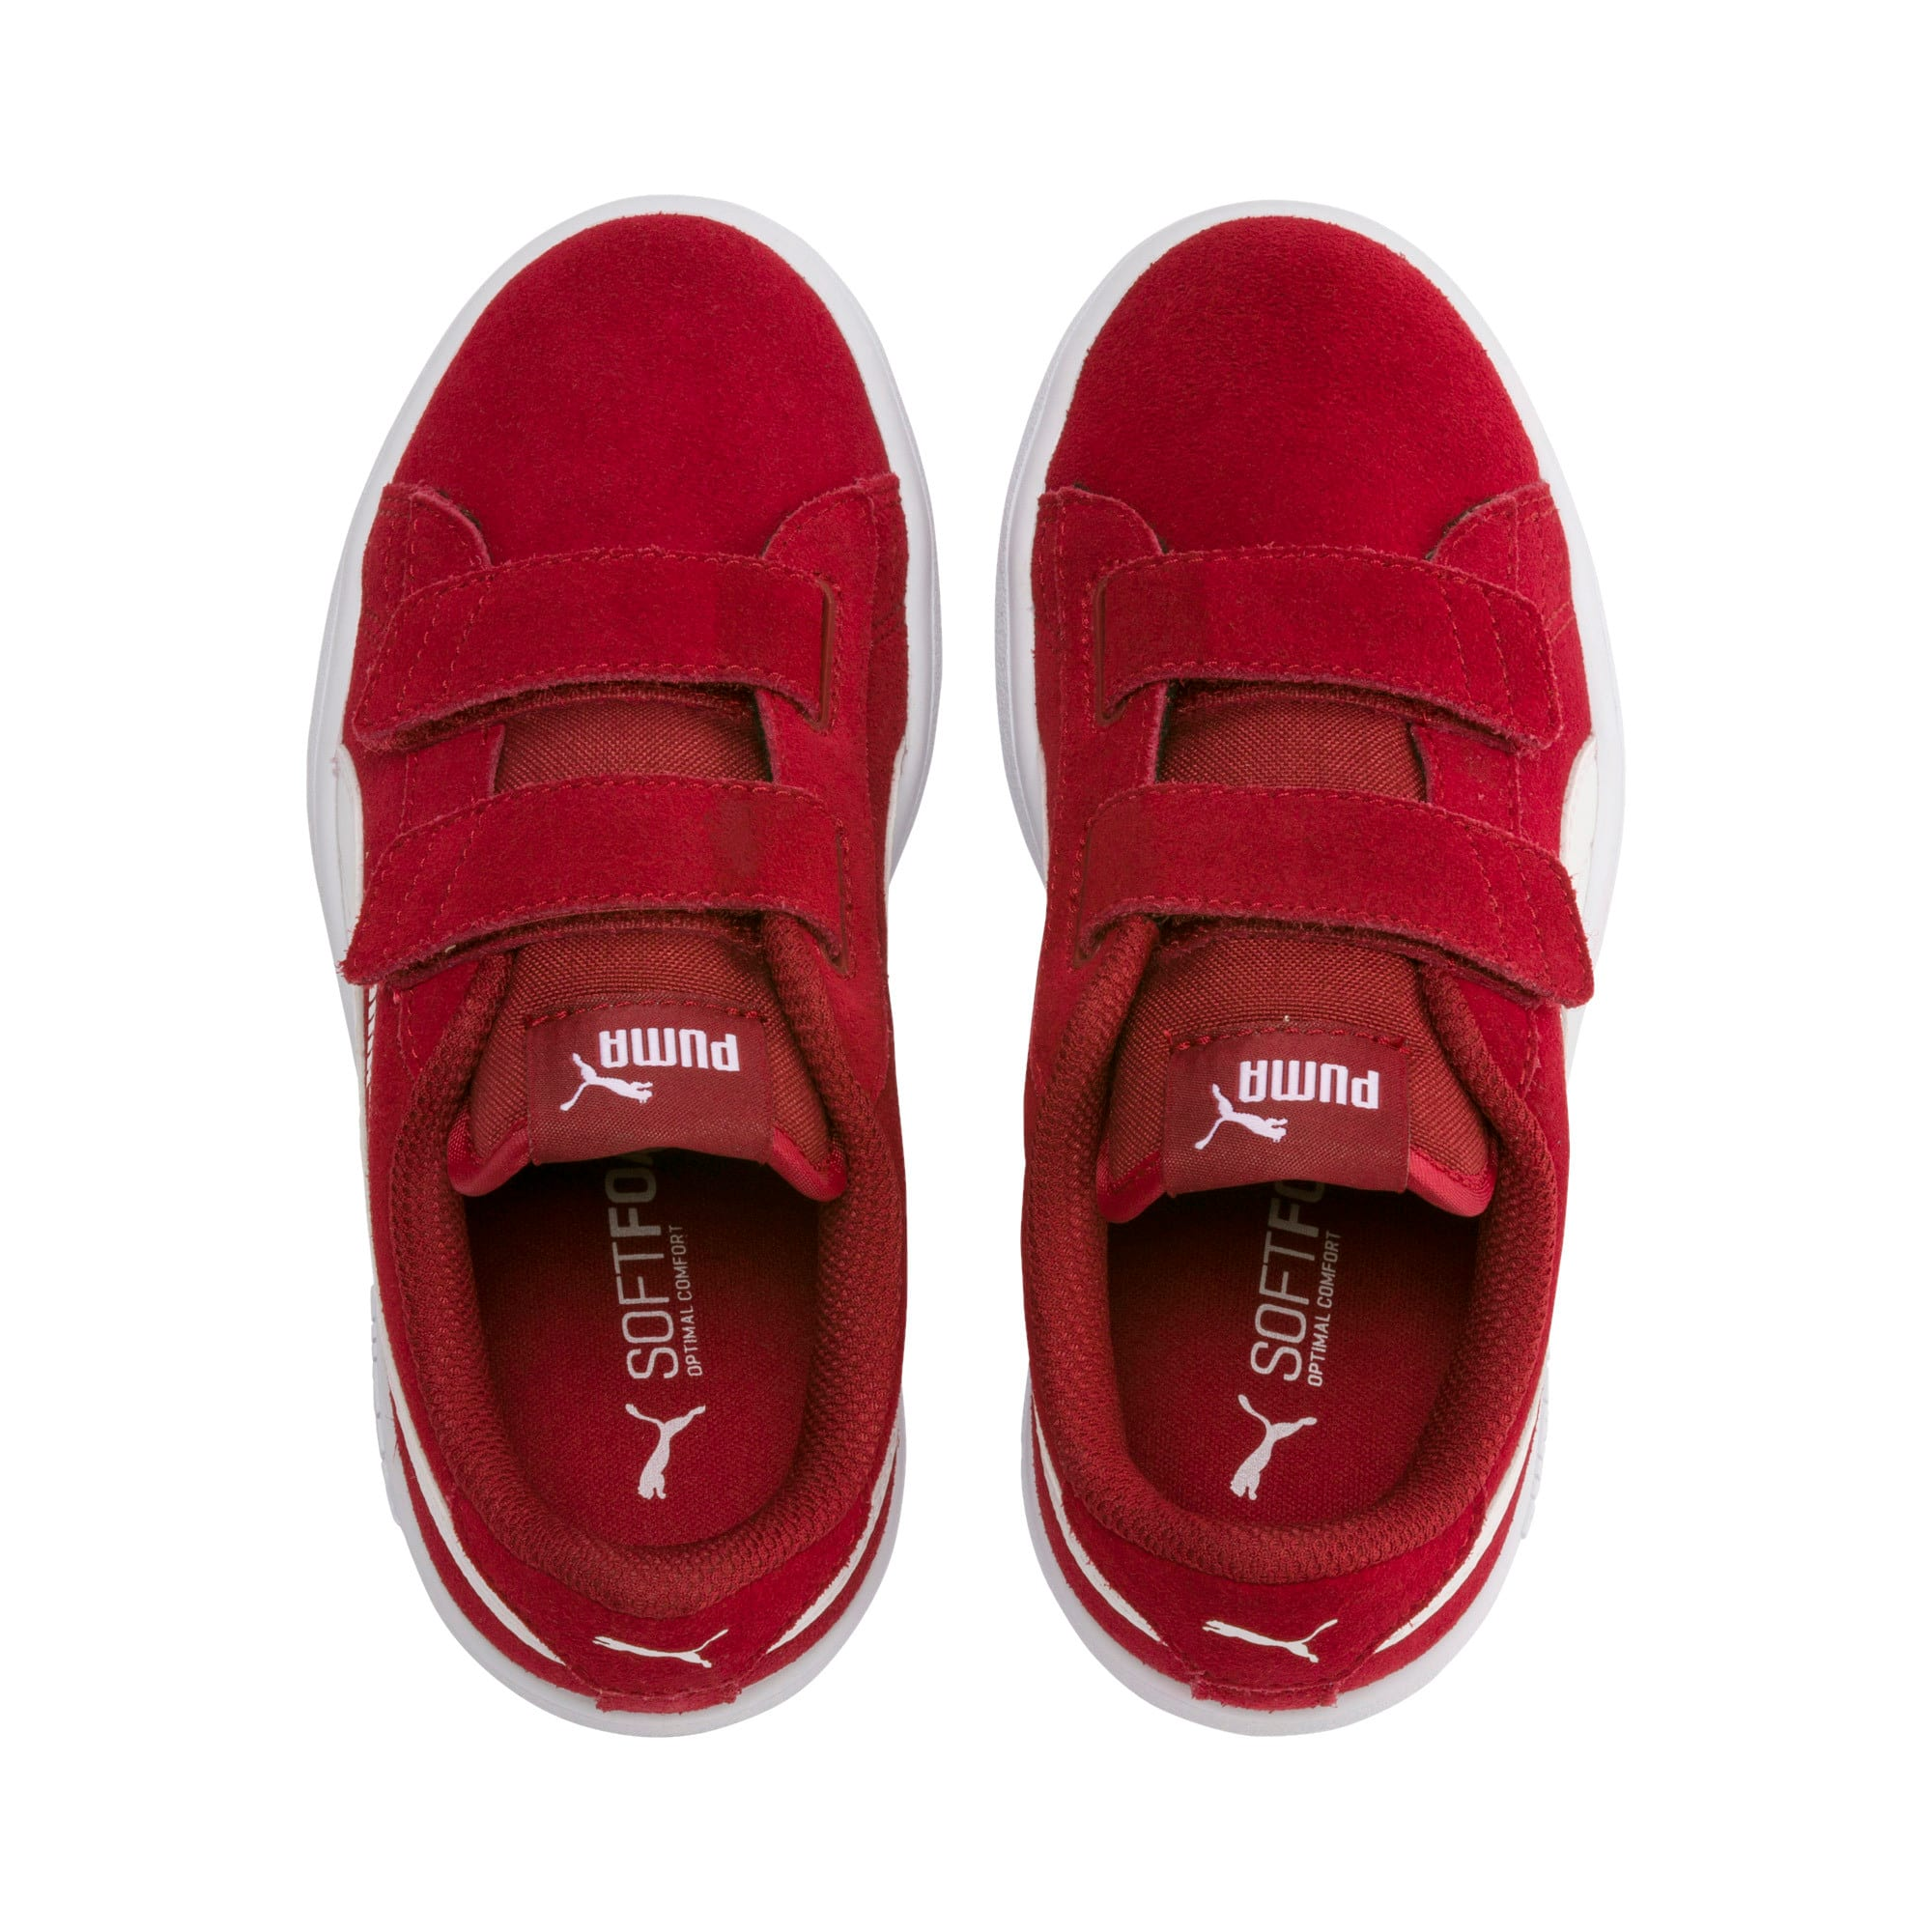 Thumbnail 6 of Smash v2 Suede Little Kids' Shoes, Rhubarb-Puma White, medium